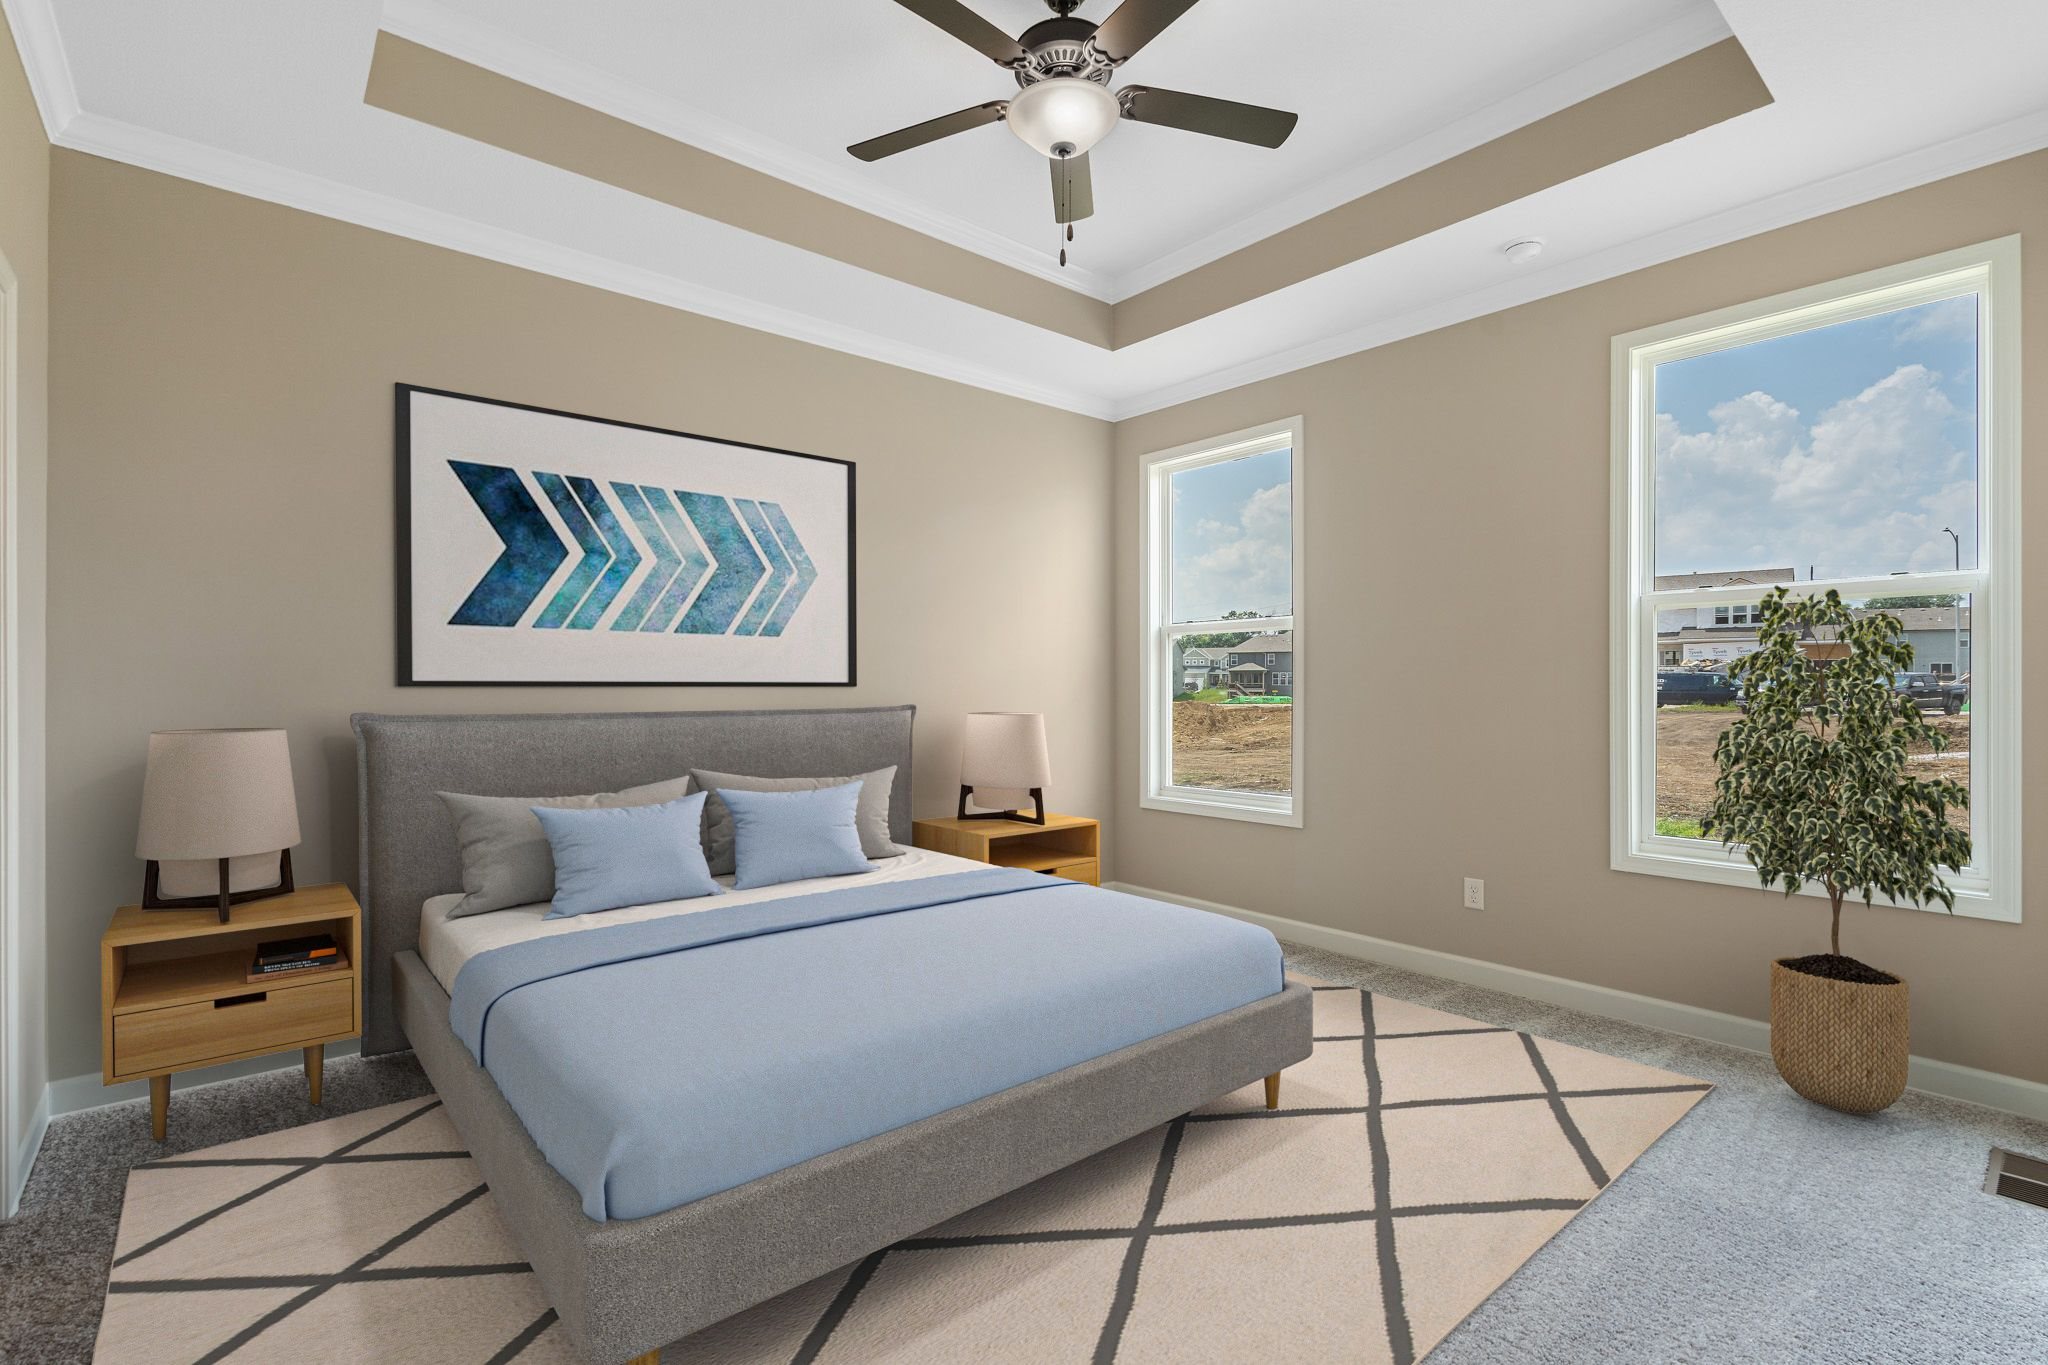 Bedroom featured in the Westport - Care Free By Summit Homes in Kansas City, KS